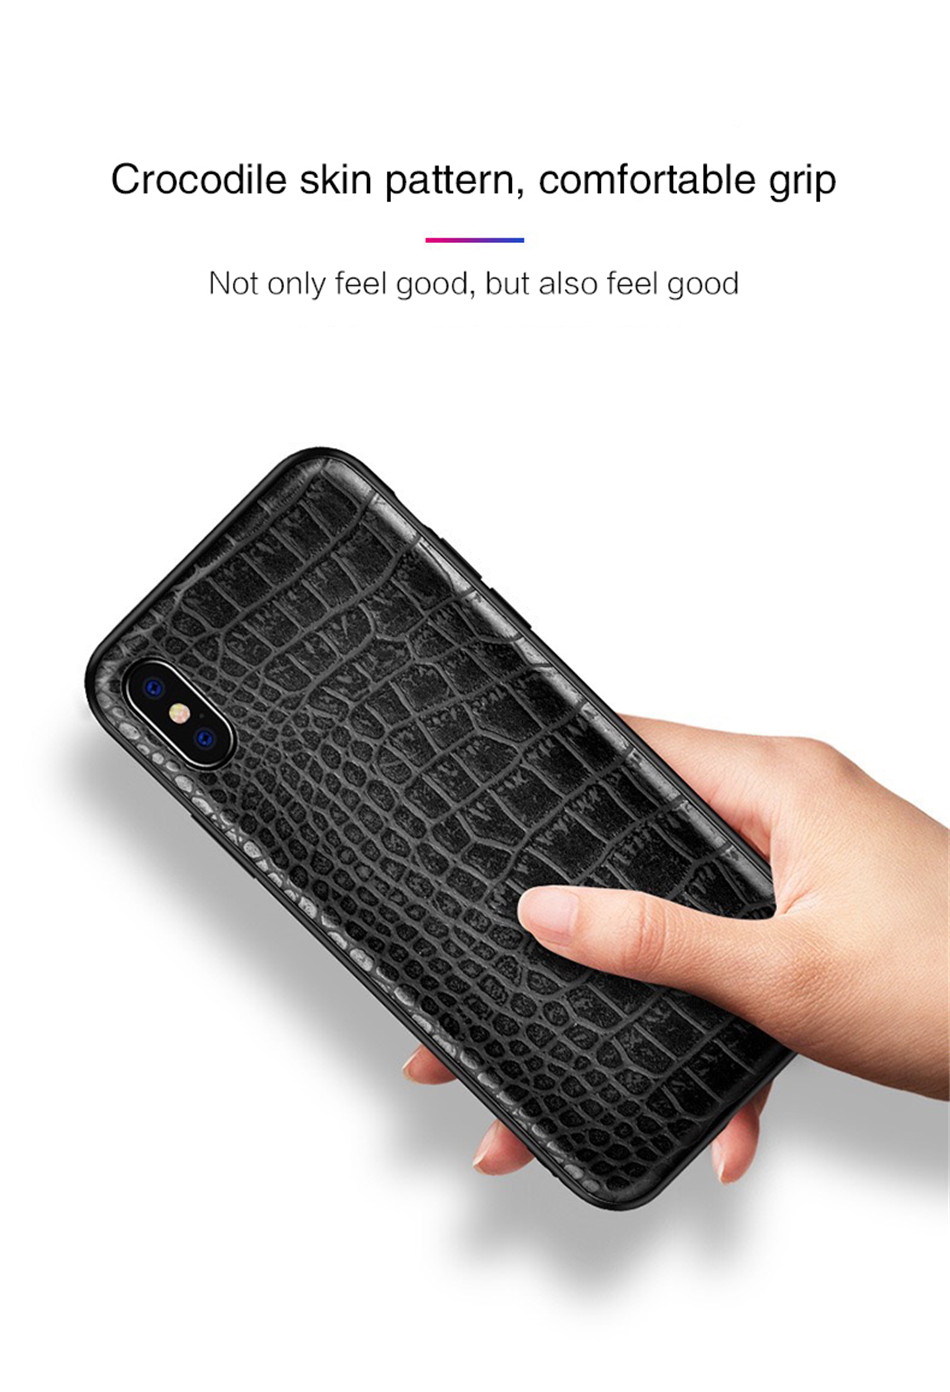 Retro Vintage Phone Bag Case For Iphone X 6 6s 7 7s 8 Plus Crocodile Snake Skin Pattern Soft Protective Cover Shell For iphoneX (7)